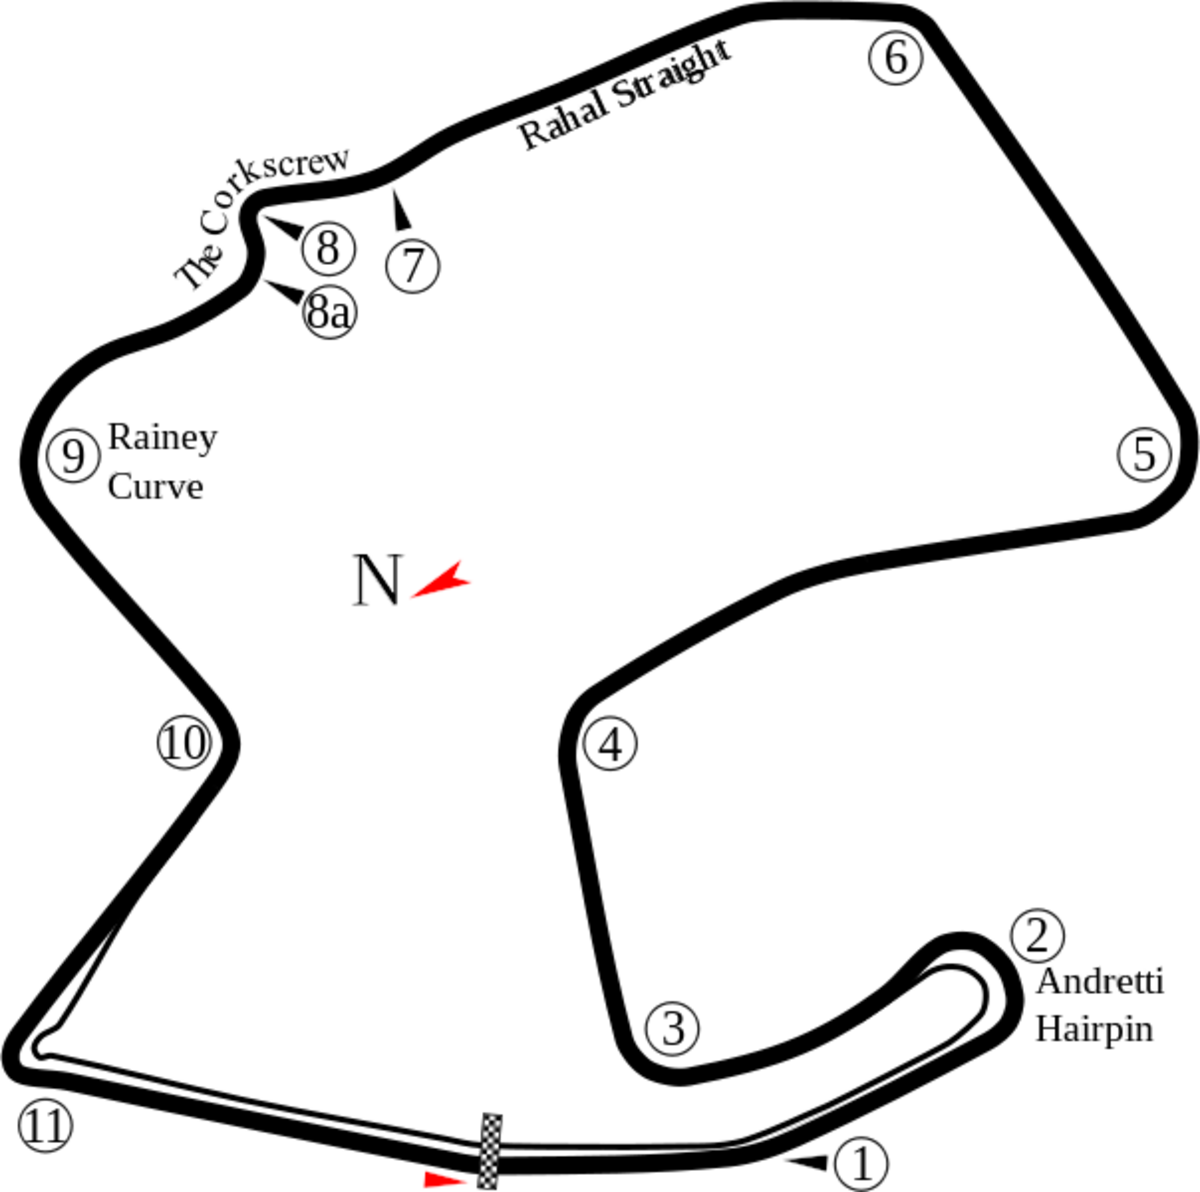 Laguna Seca Course map